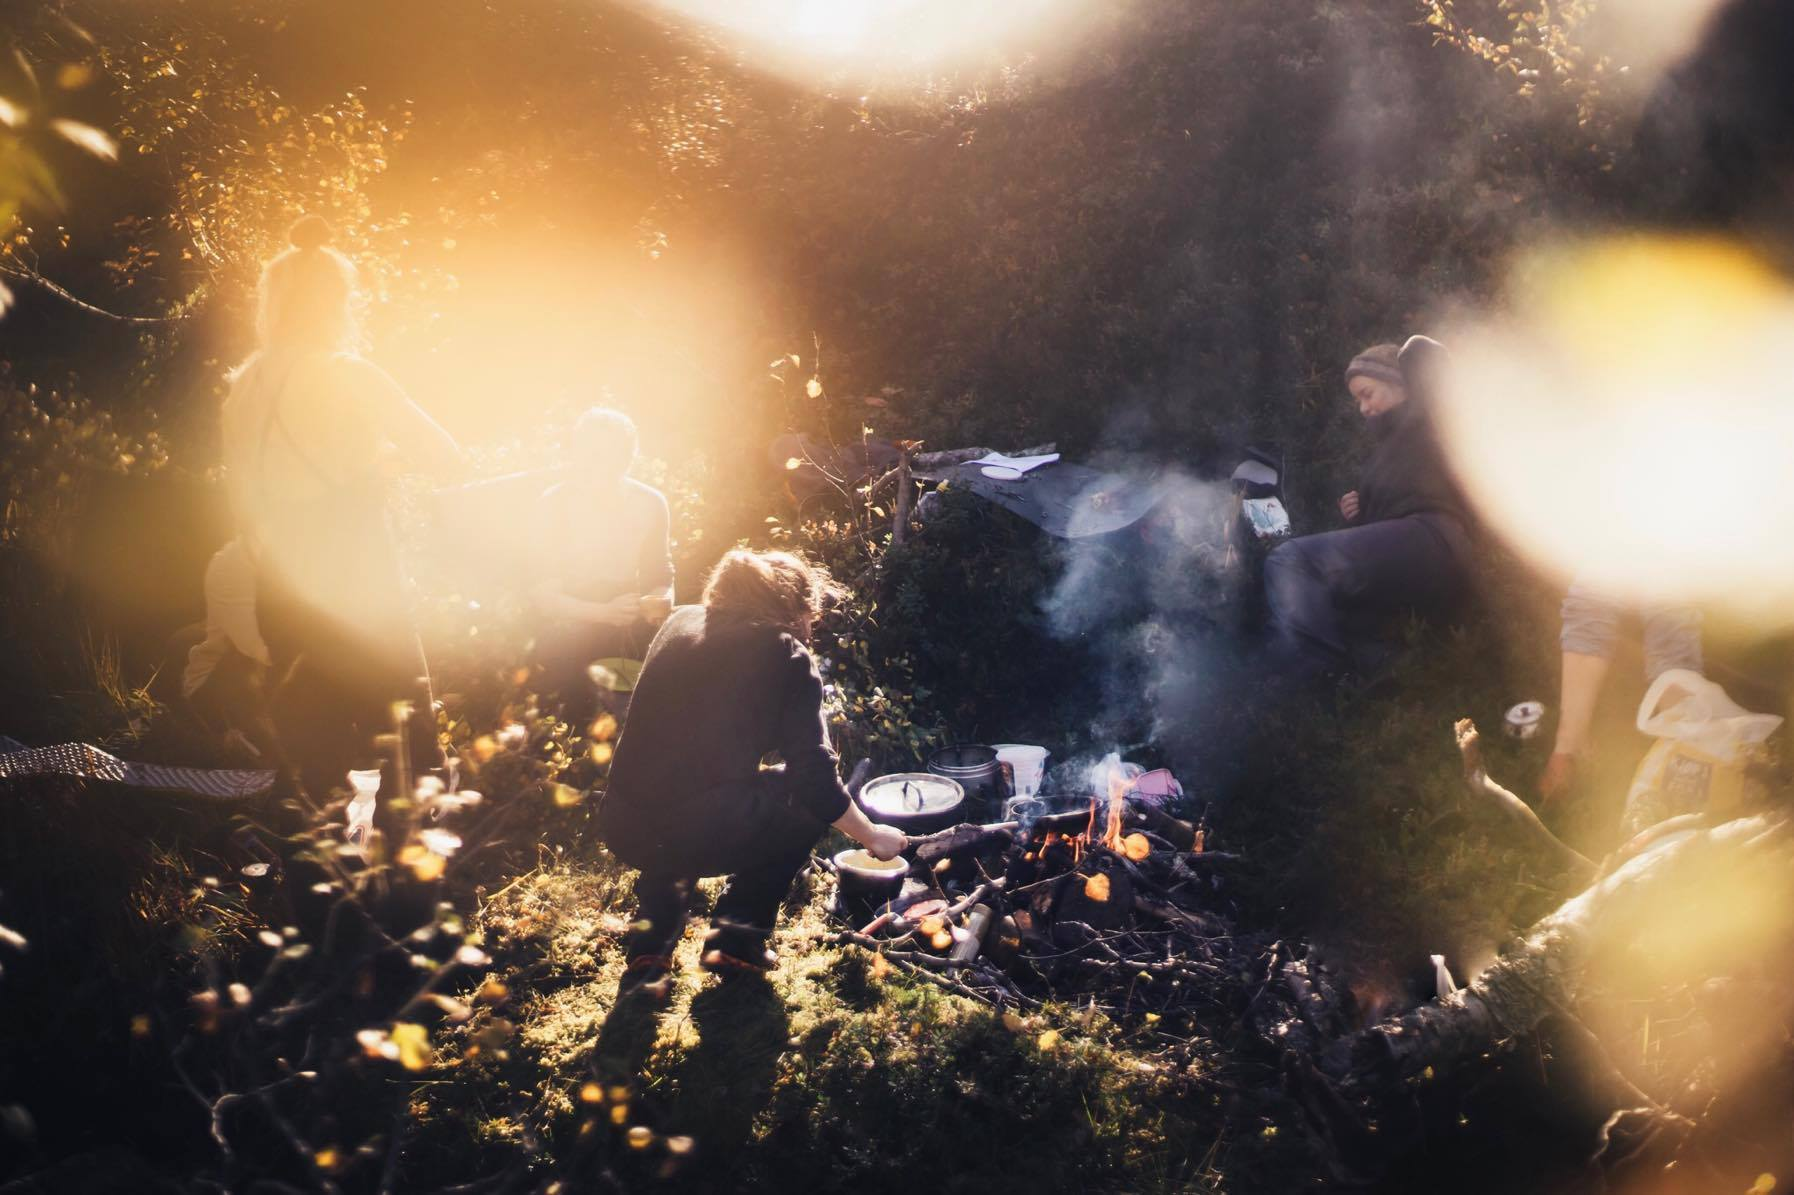 Friluftsliv - a group of friends around a campfire - the photo has some lens flare, suggesting early morning or early evening